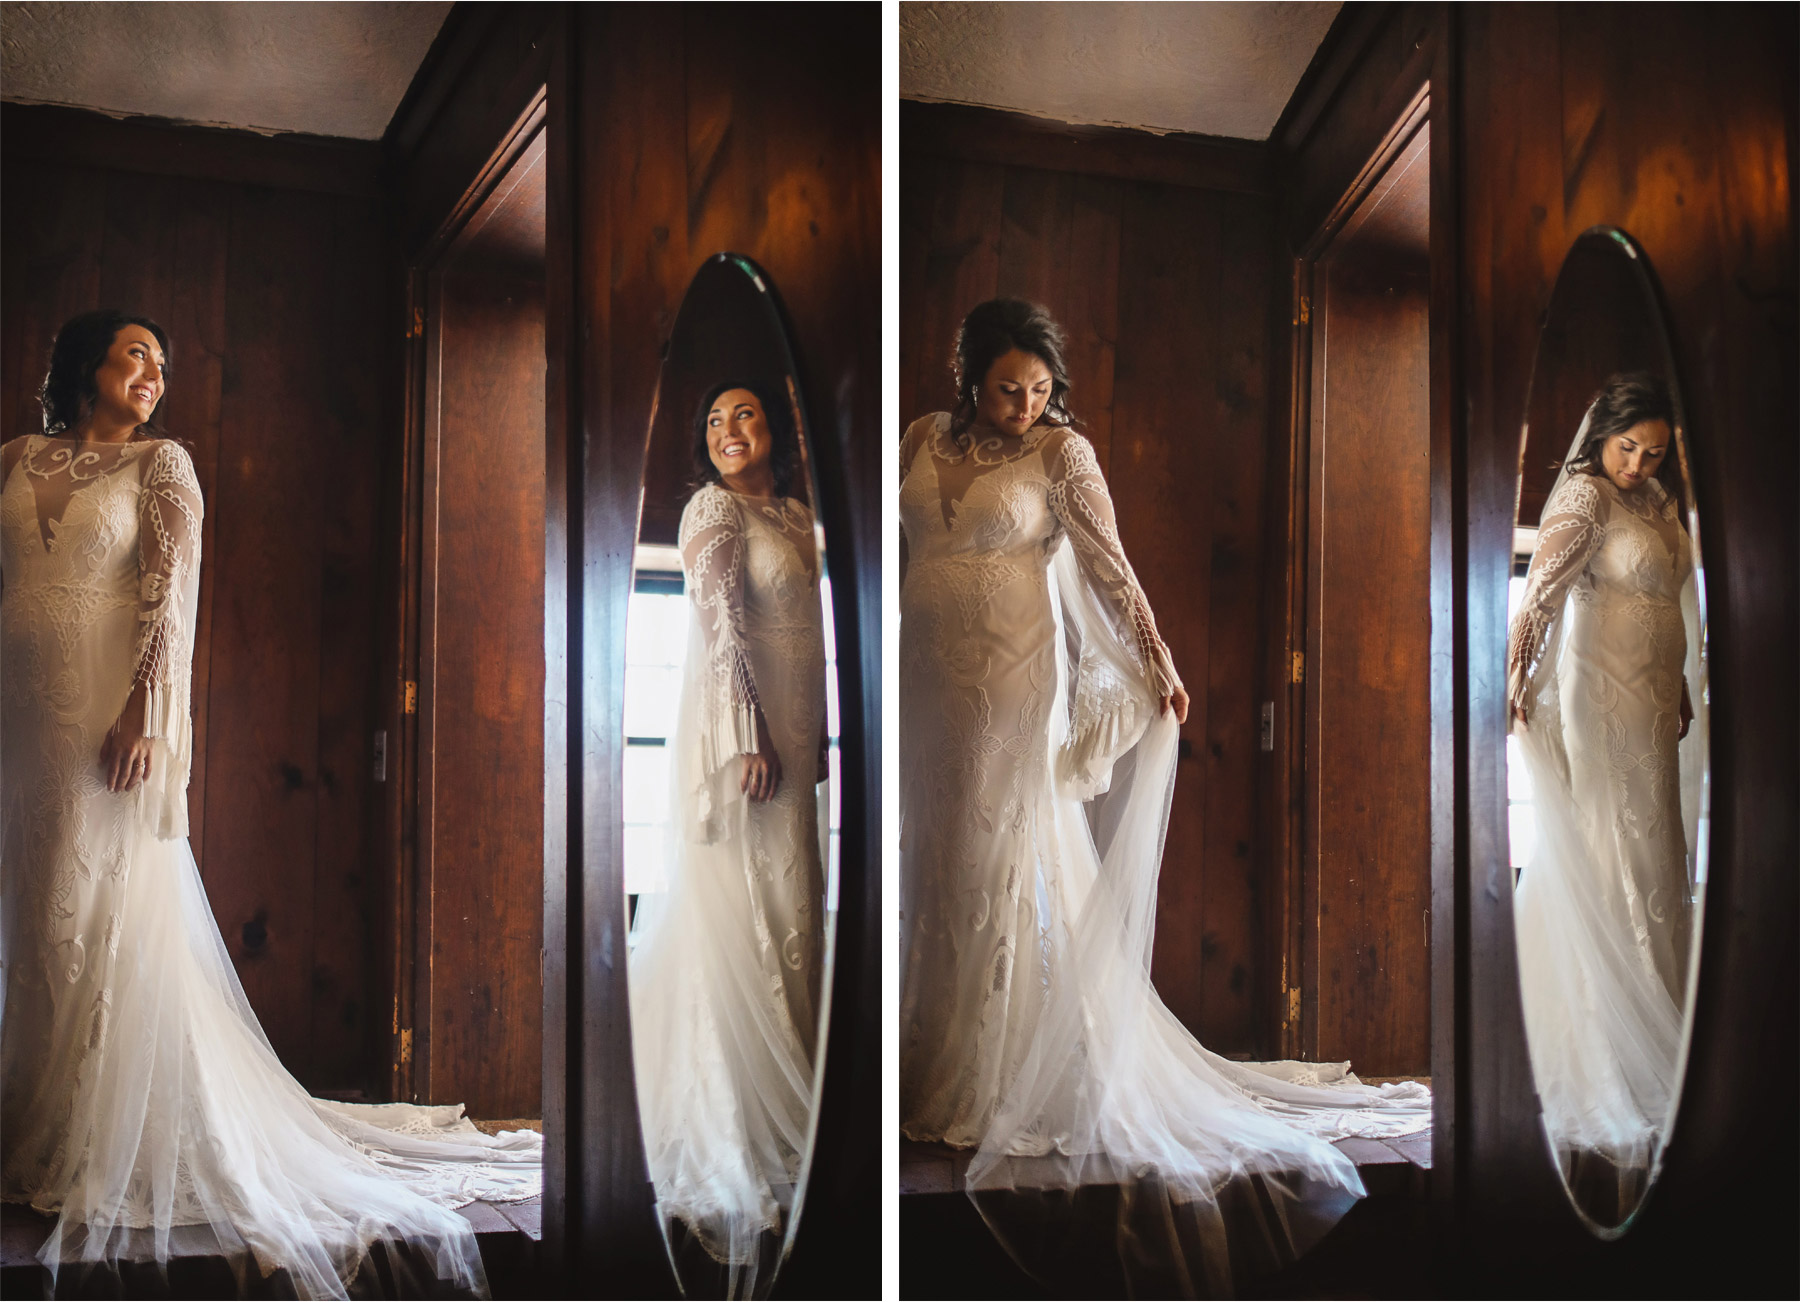 04-Vick-Photography-Rochester-Minnesota-Mayowood-Stone-Barn-Country-Wedding-Bride-Dress-Mirror-Lizz-and-Brady.jpg